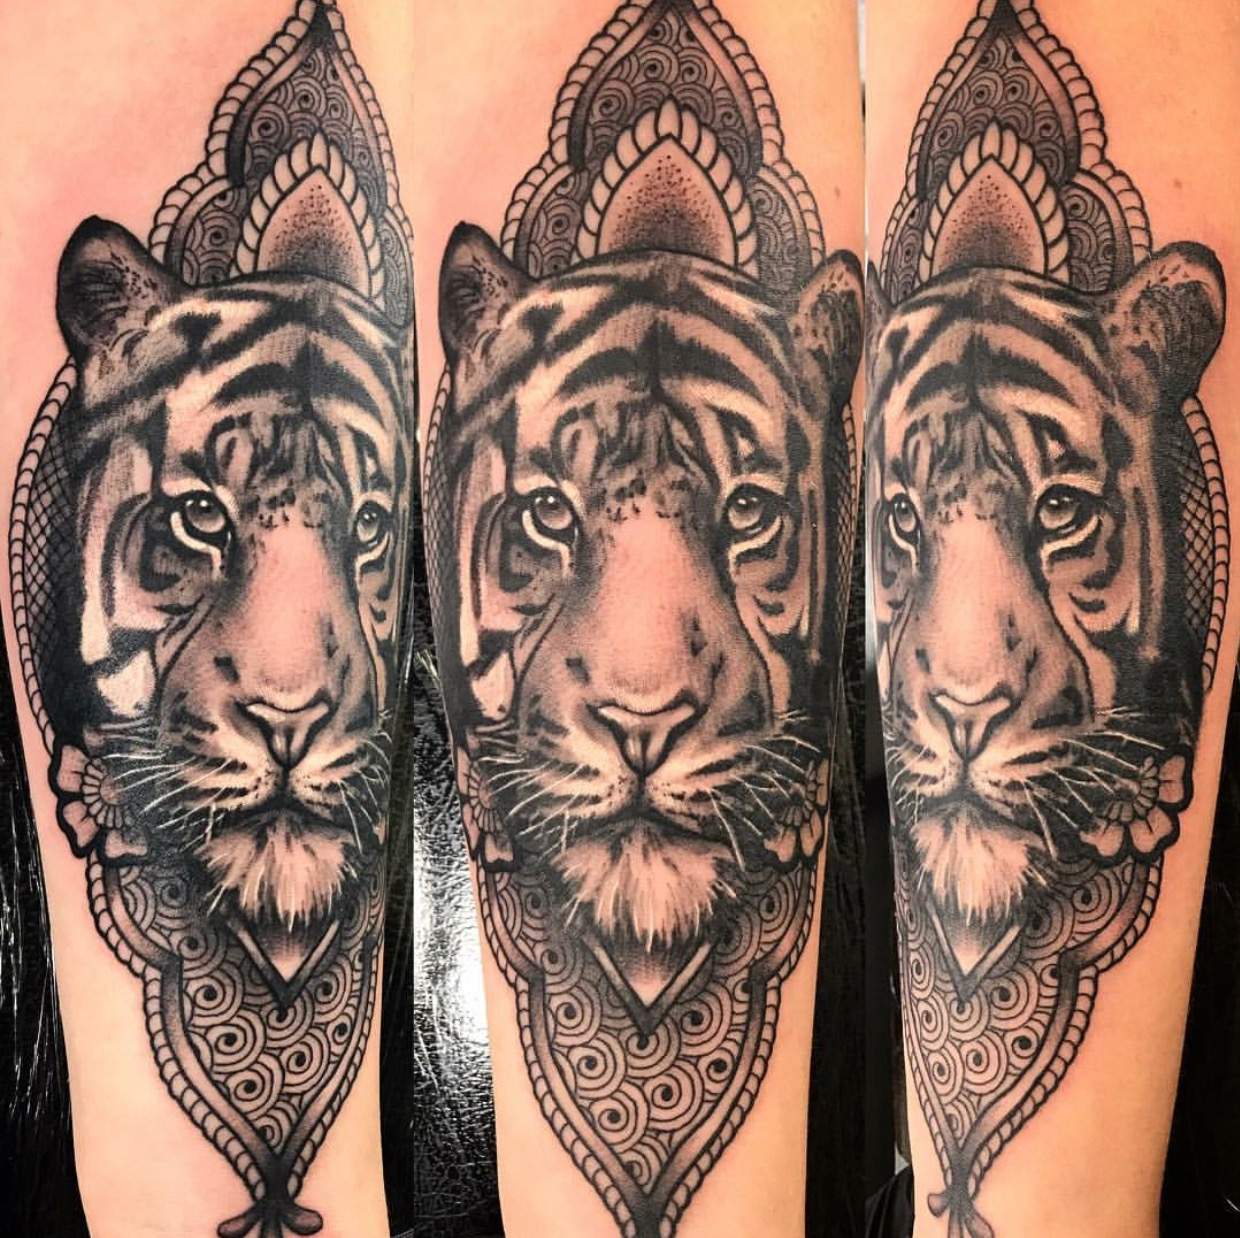 MitchellCanter Tattoos21